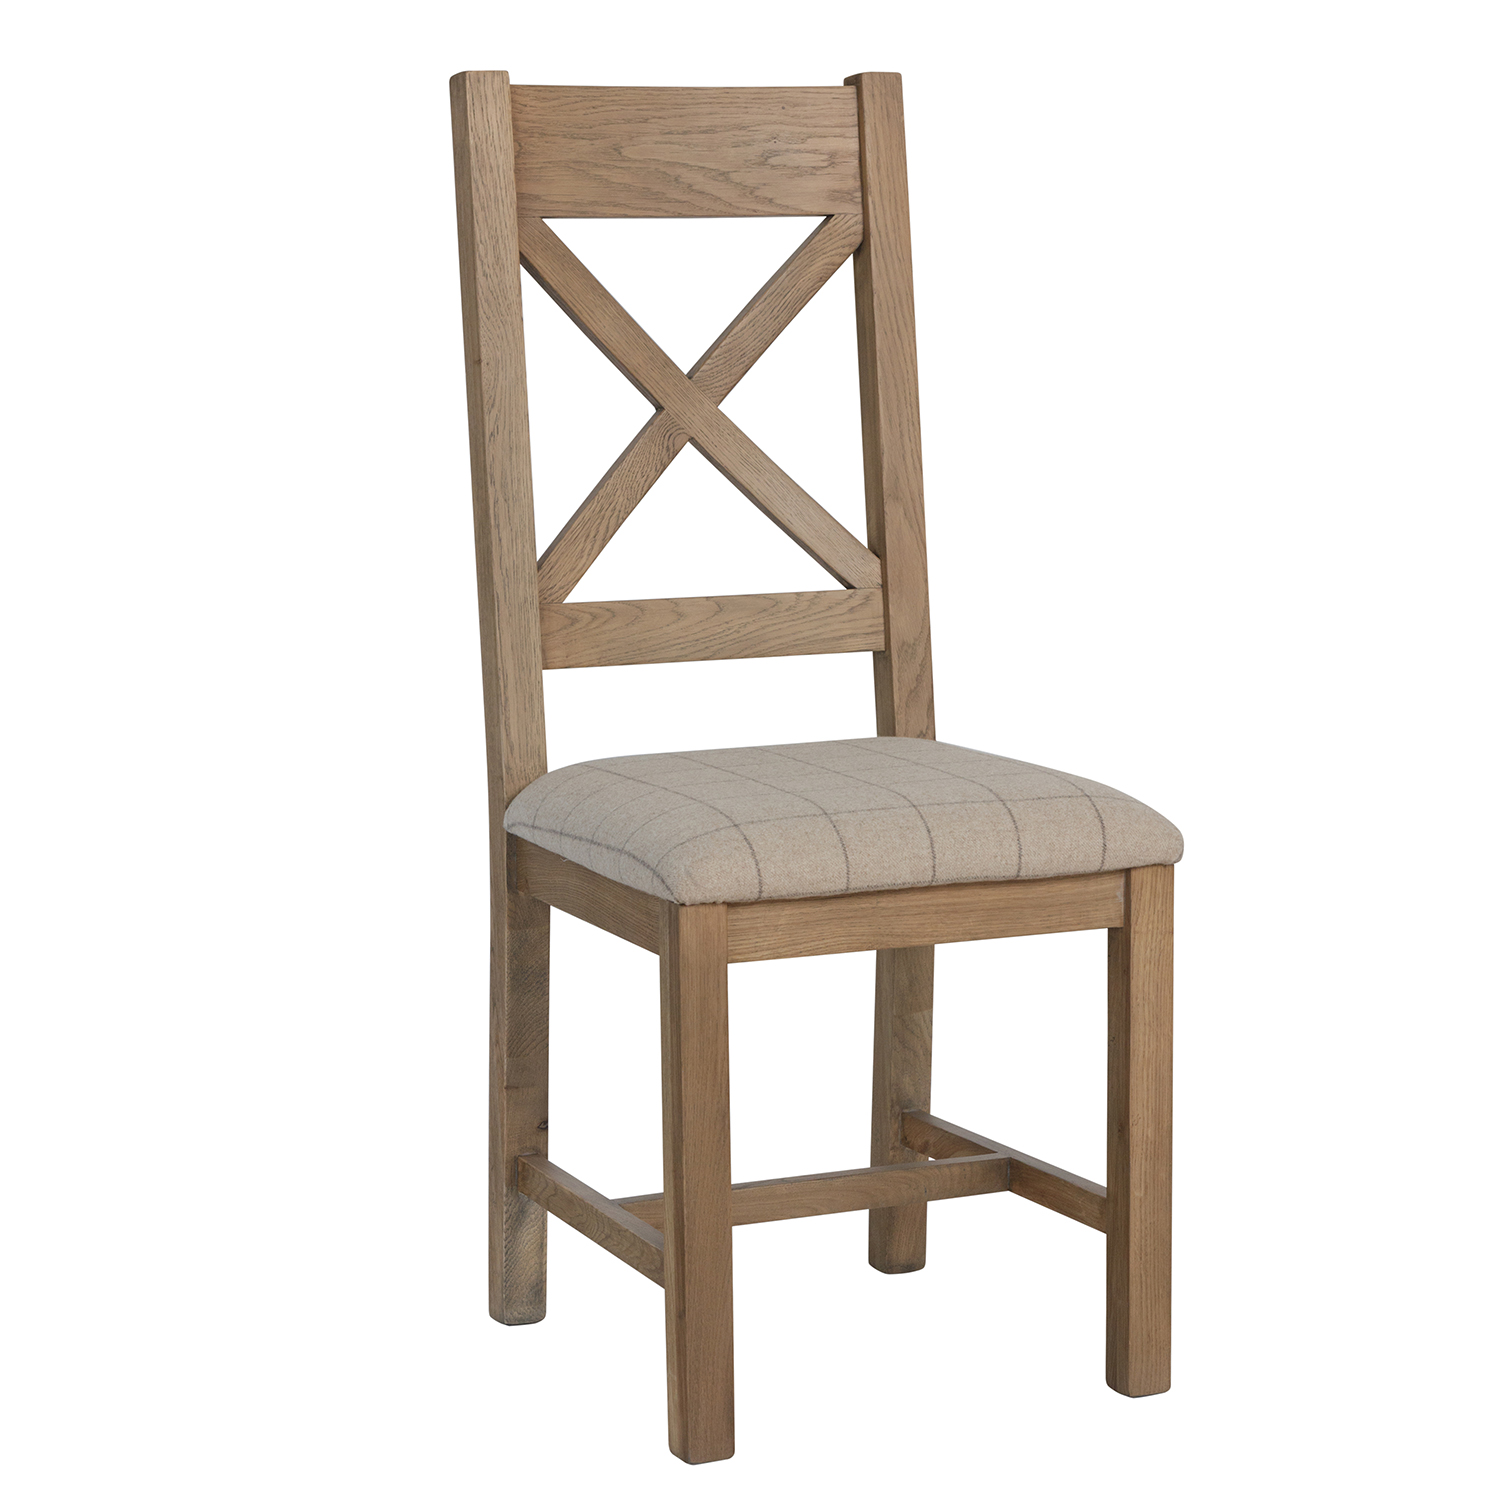 Heritage Oak Cross Back Dining Chair - Natural Check